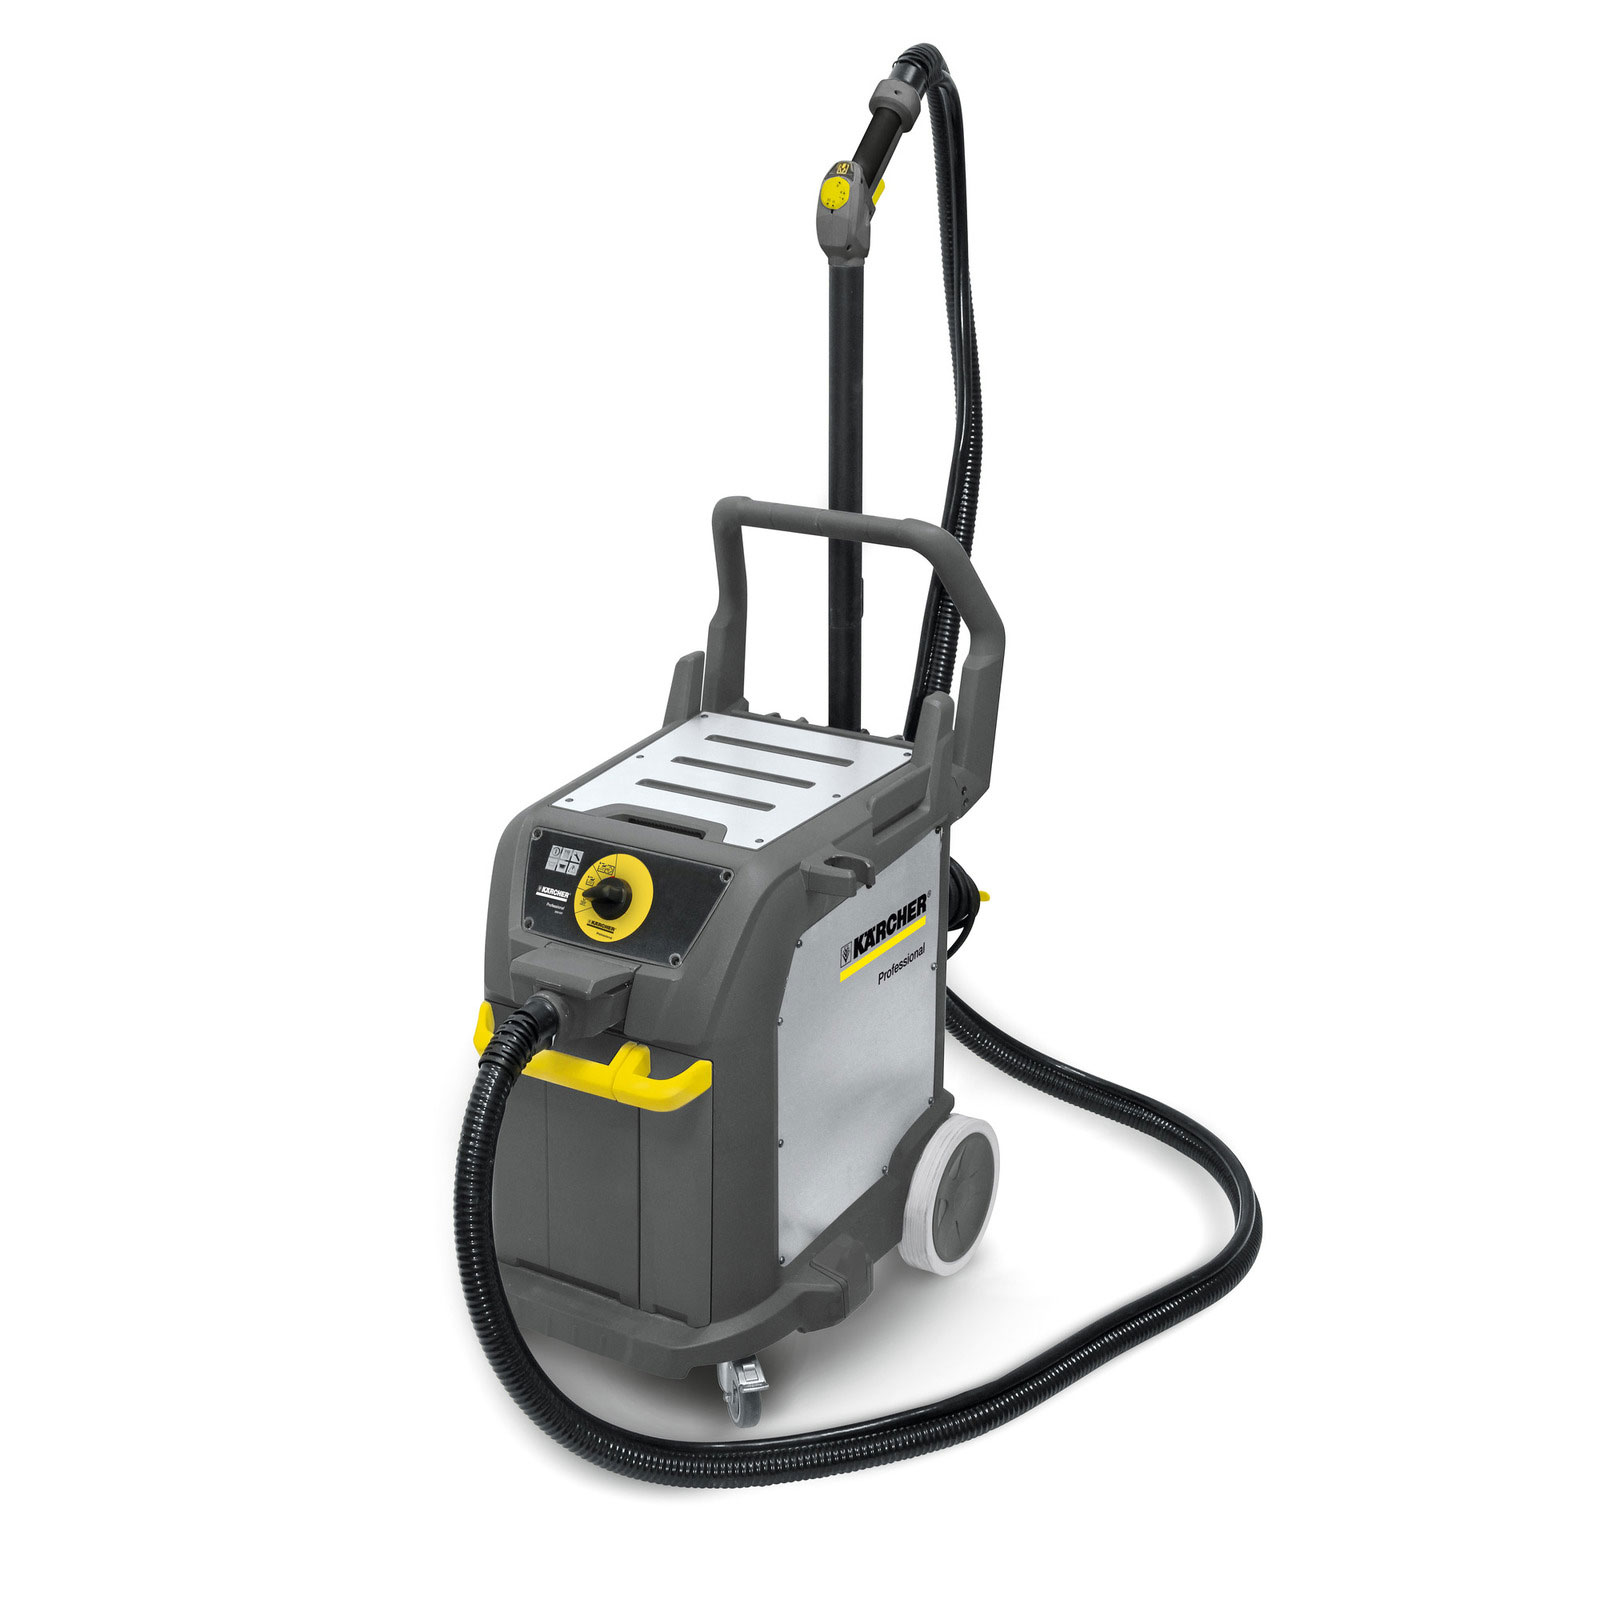 Karcher SGV 6/5 Steam Vapor with Vacuum Cleaner 1.092-000.0 FREE Shipping (up to 327 degrees F) 240volts